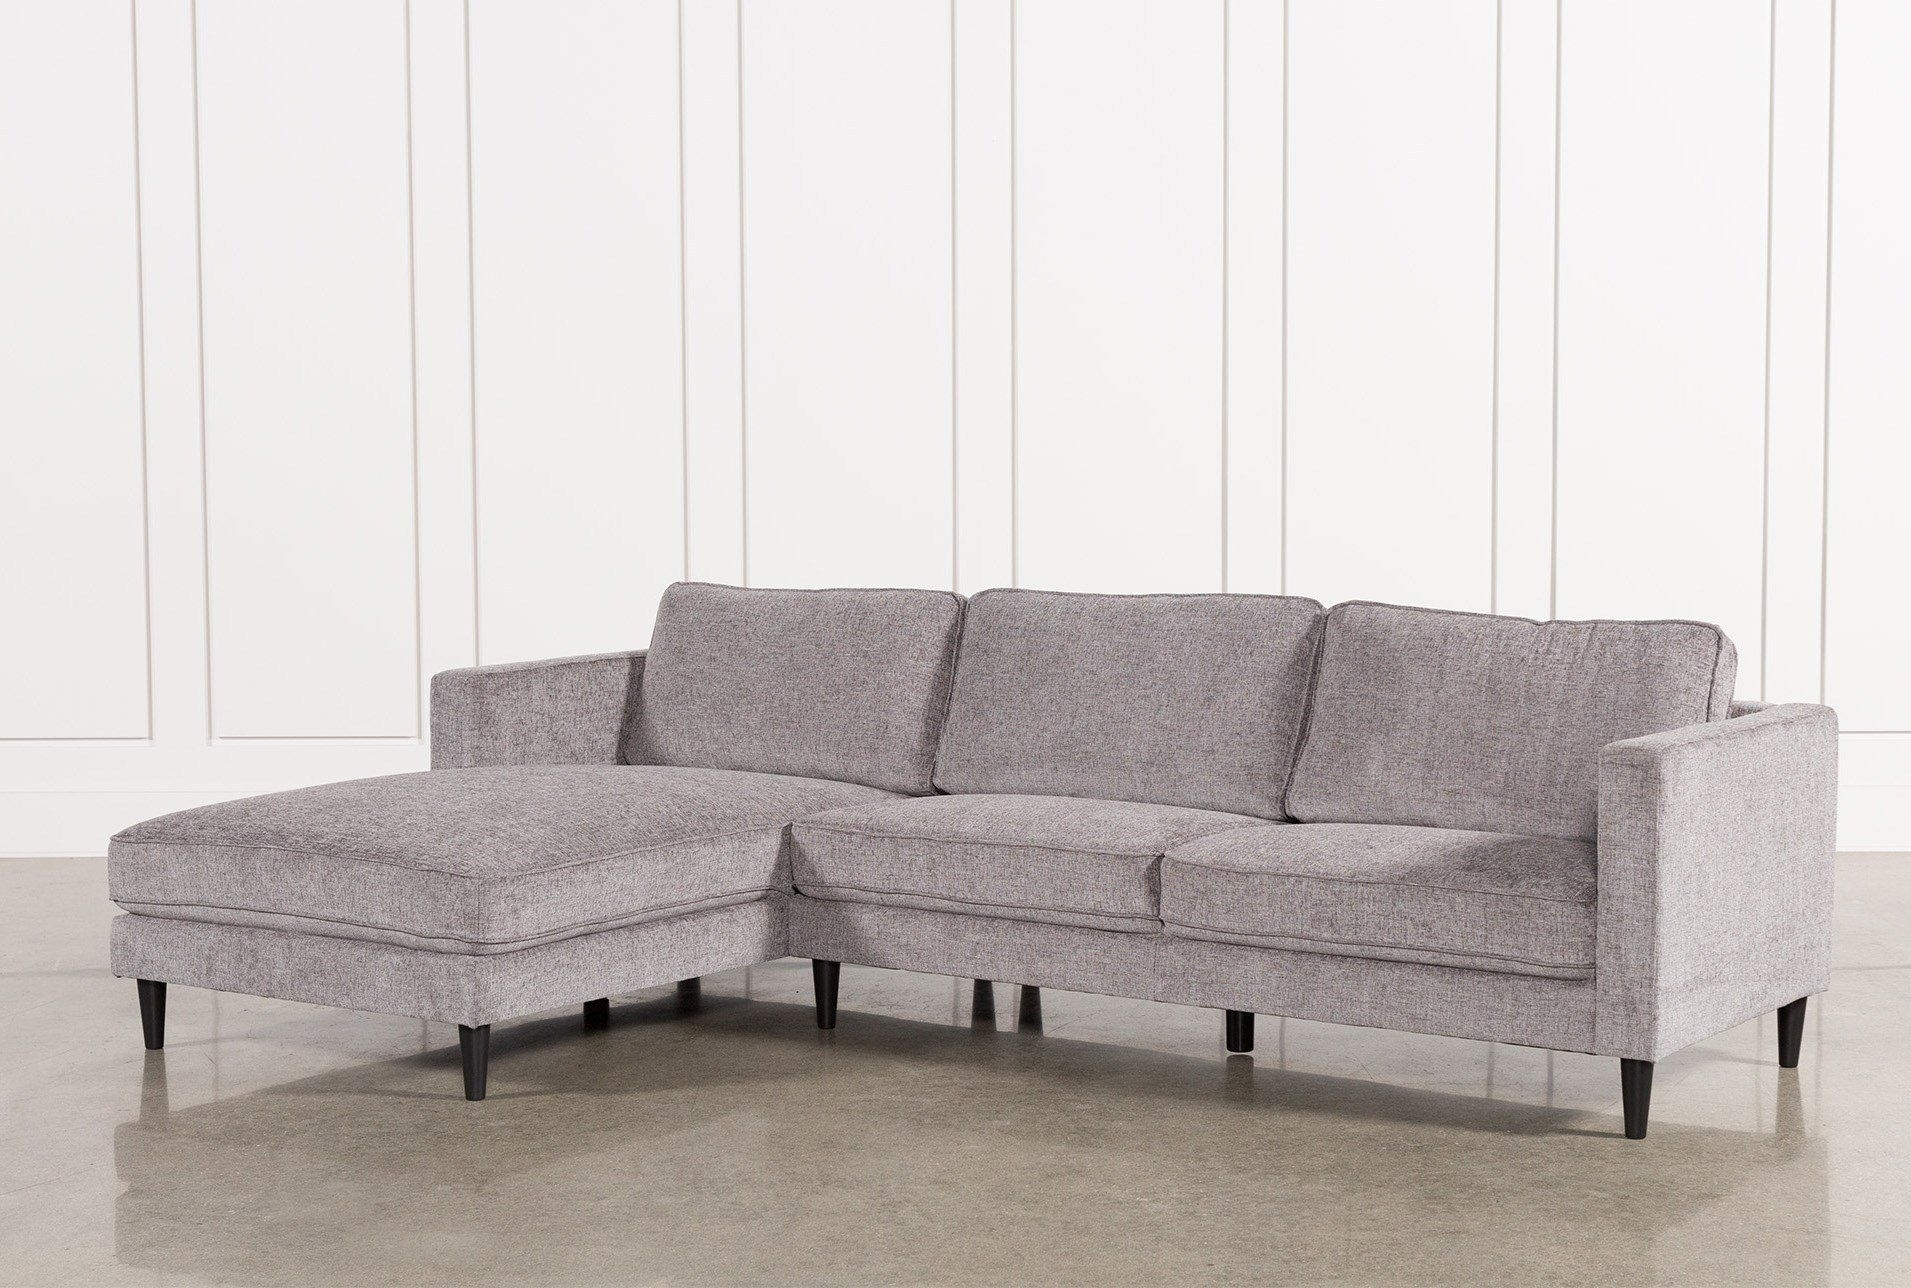 Cosmos Grey 2 Piece Sectional W/laf Chaise | Couches | Pinterest for Egan Ii Cement Sofa Sectionals With Reversible Chaise (Image 4 of 30)